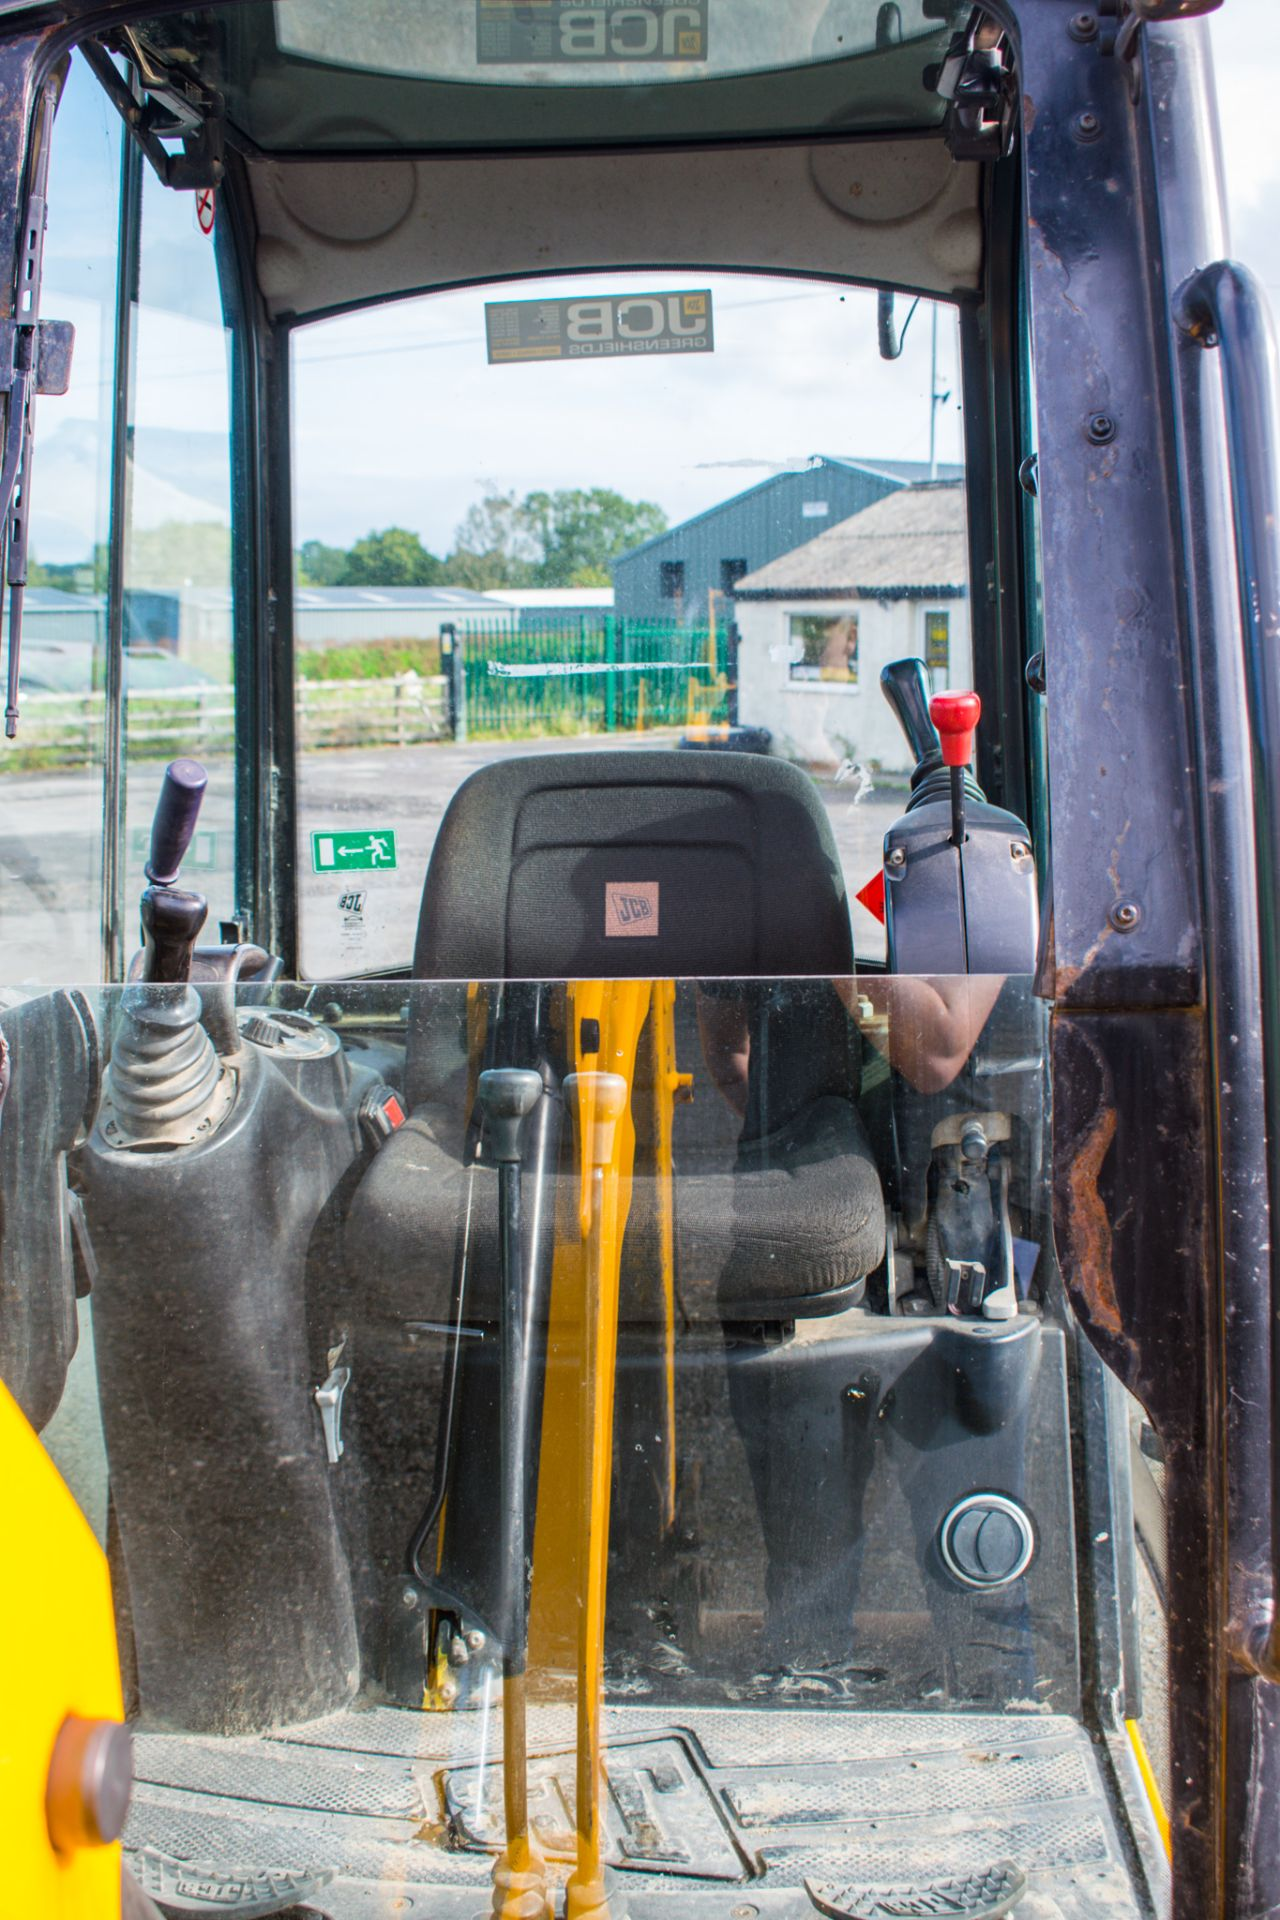 Lot 15 - JCB 8016 1.6 tonne rubber tracked mini excavator Year: 2013 S/N: 2071336 Recorded Hours: 1890